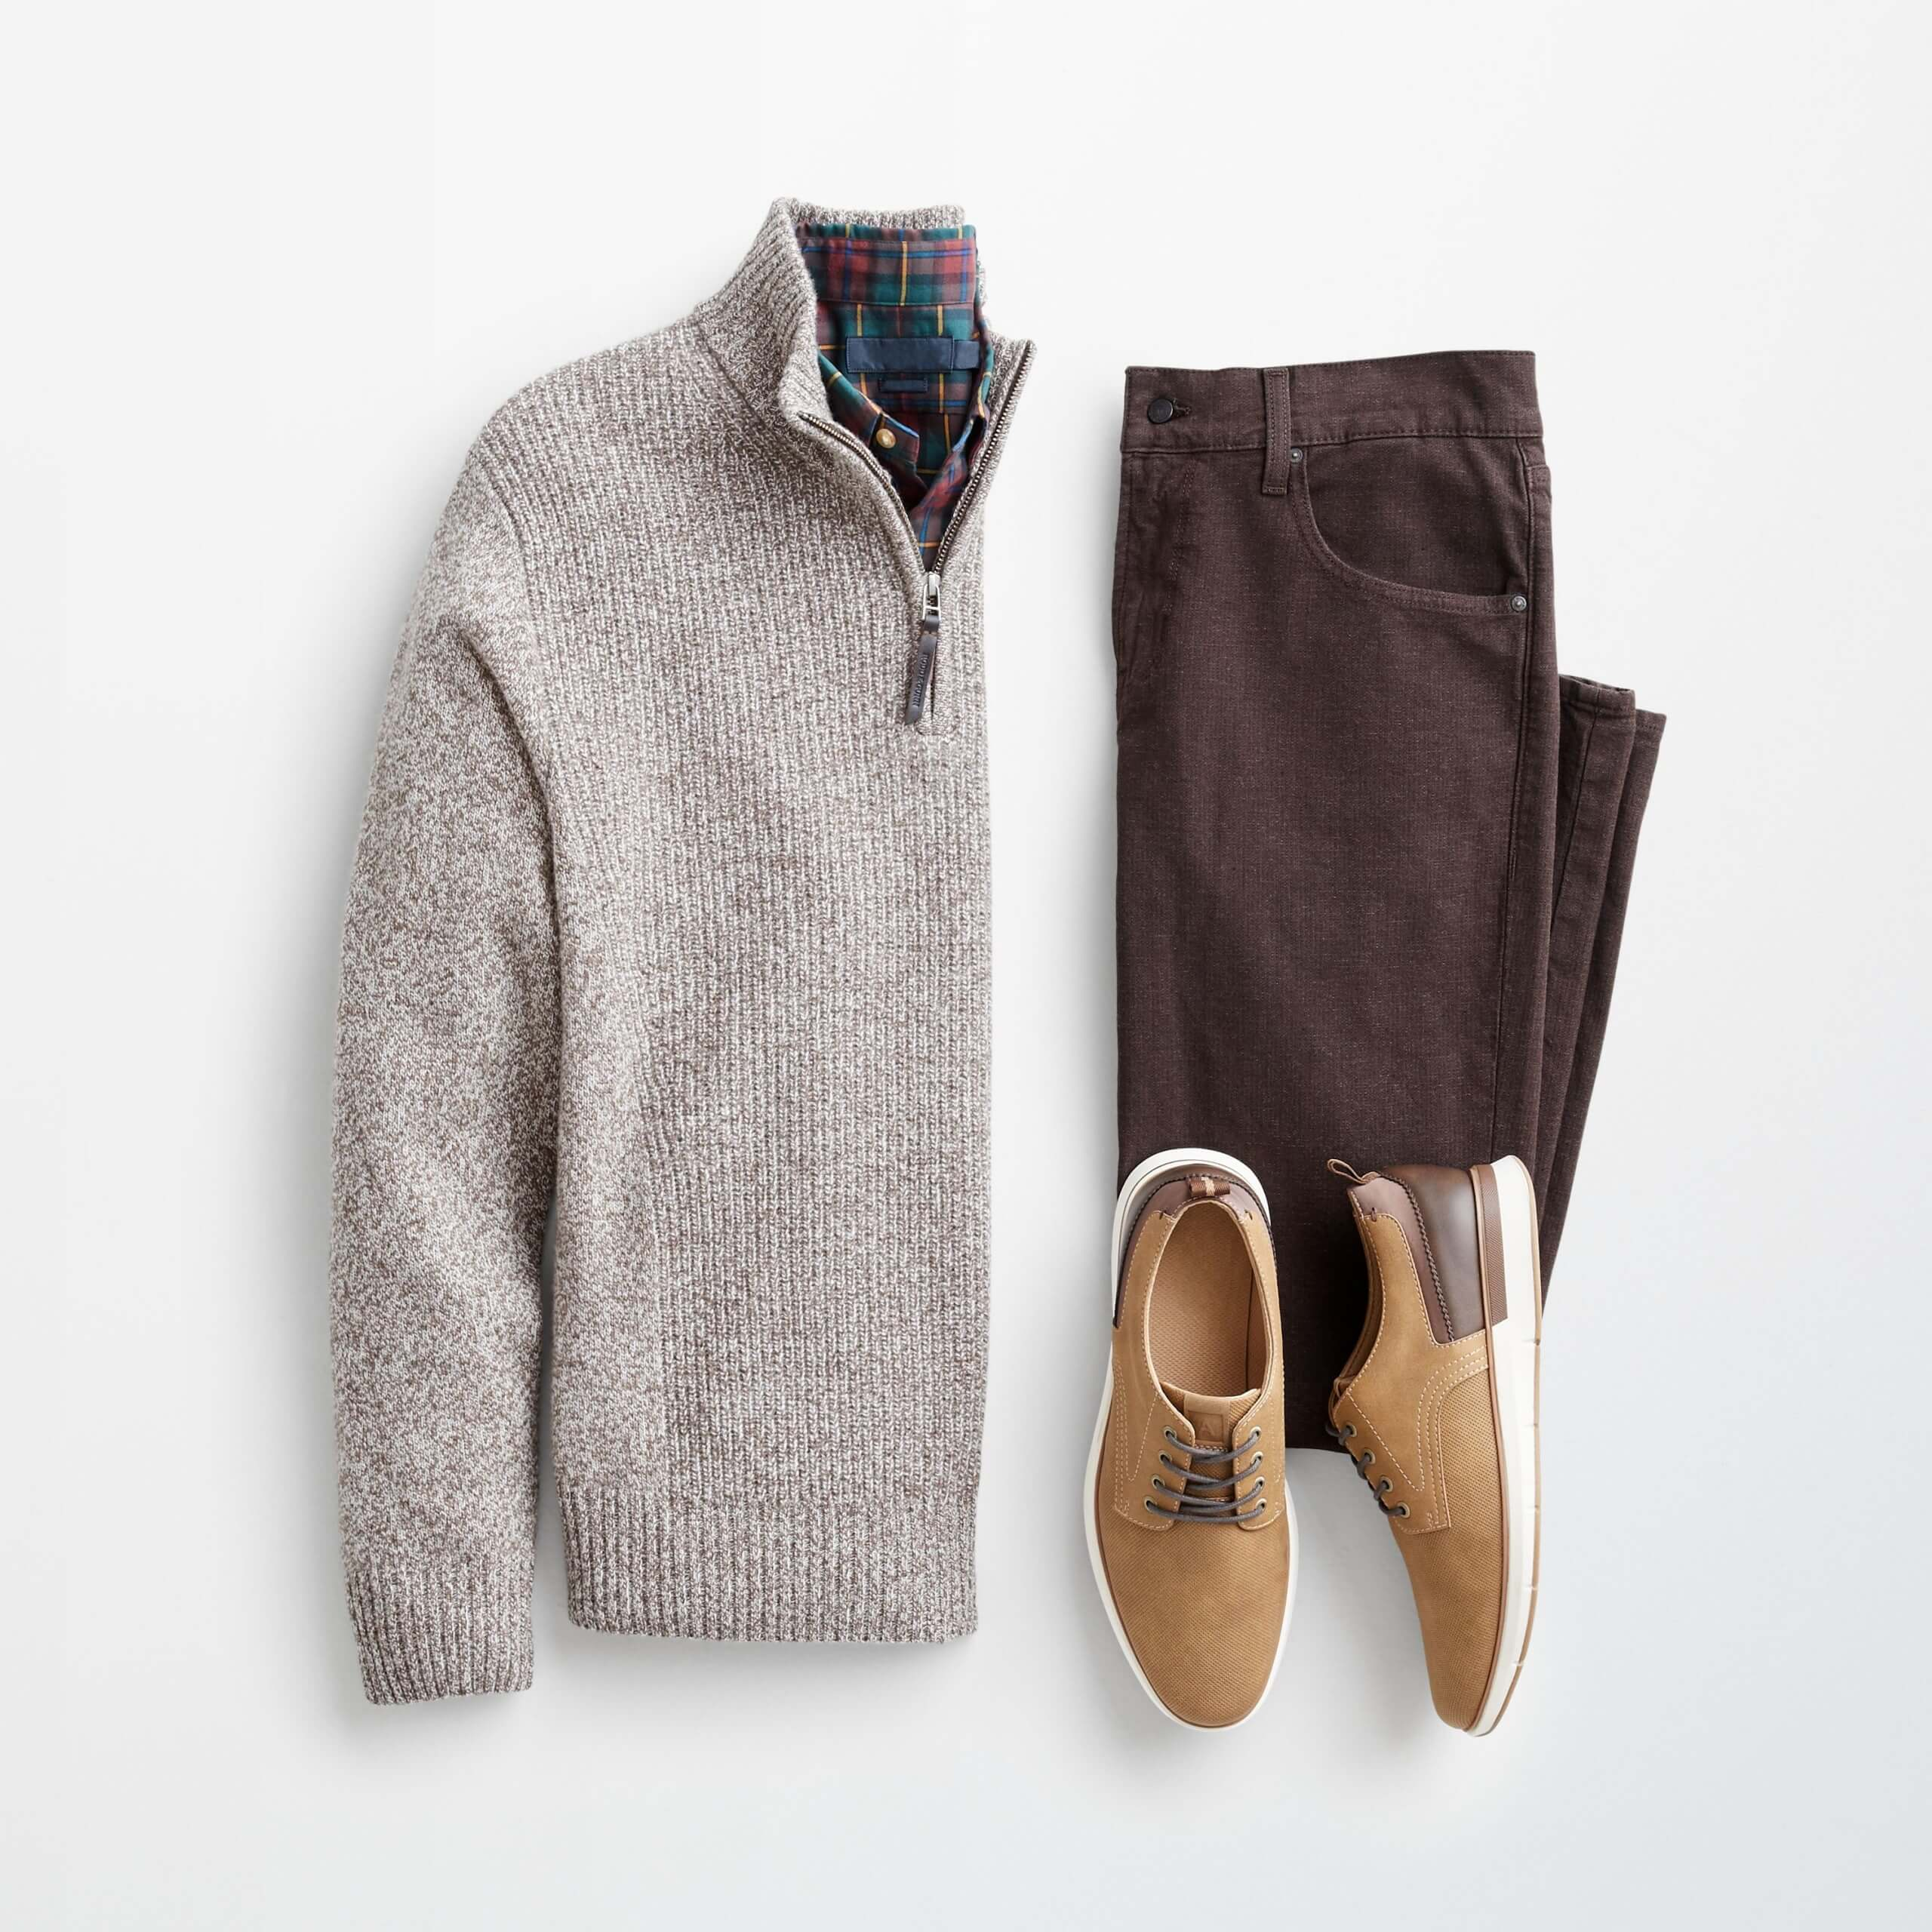 Stitch Fix Men's outfit laydown featuring tan sweater, brown pants  and tan derby shoes.